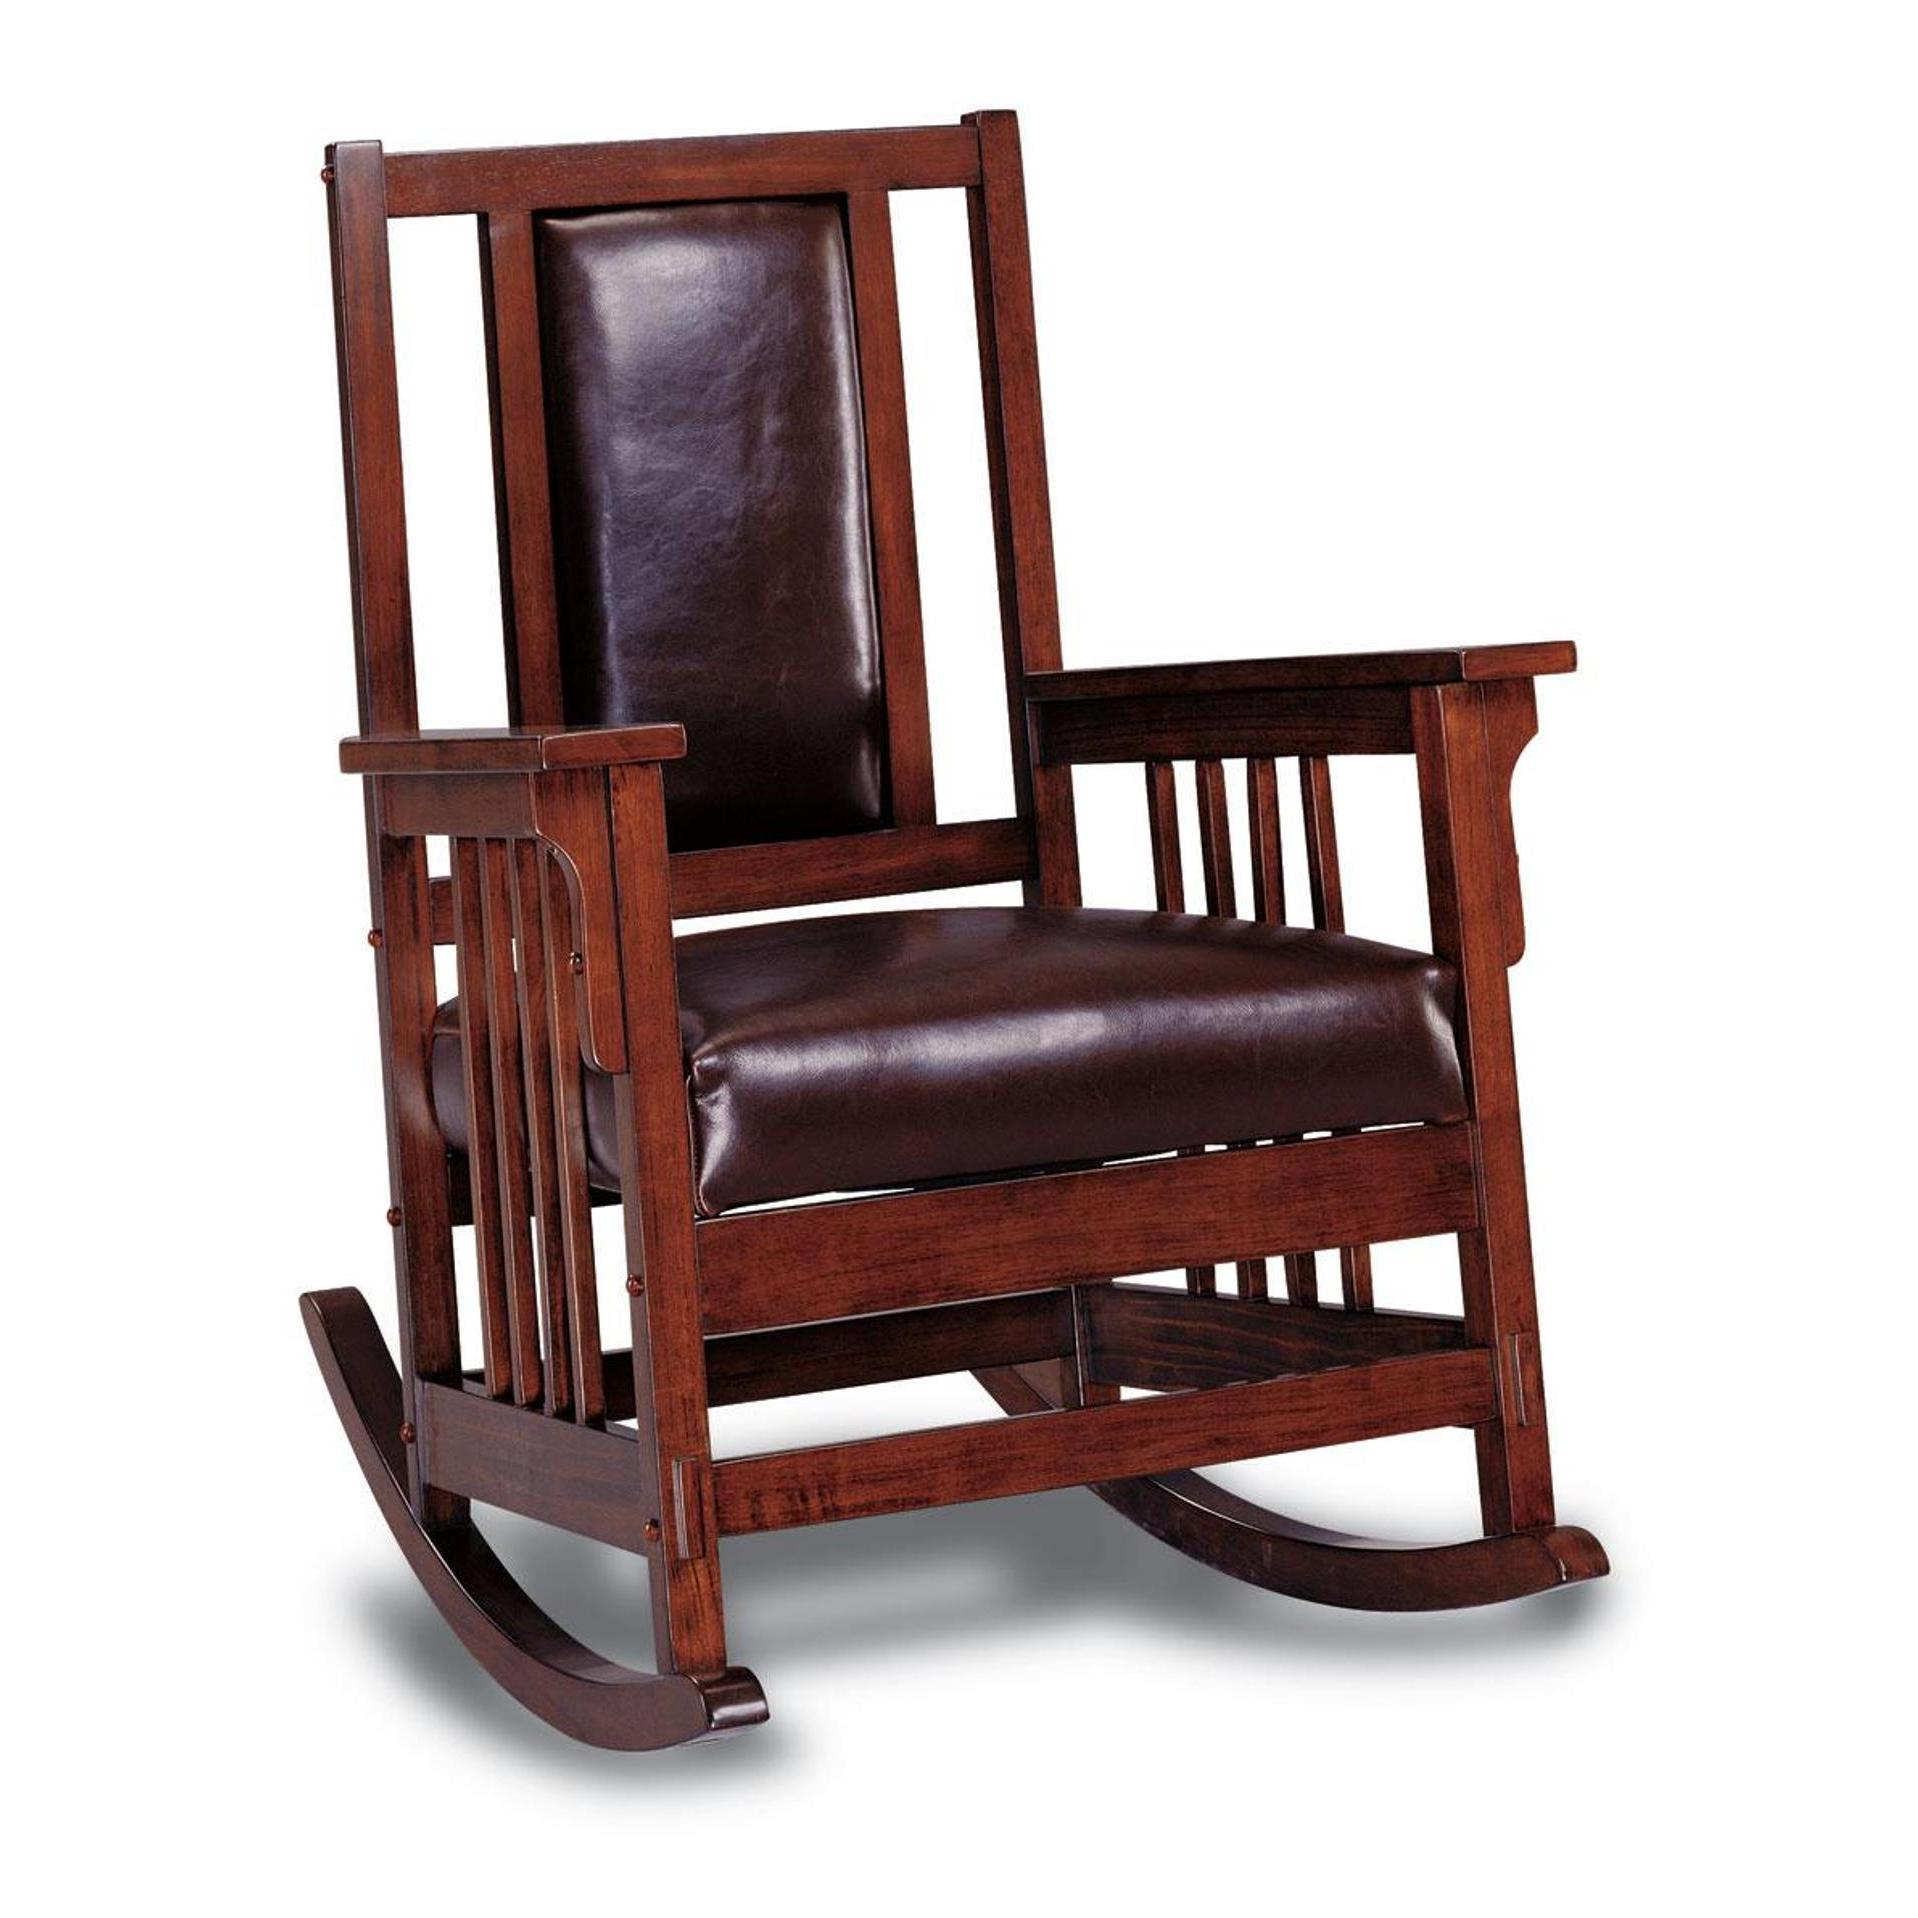 Excellent Kapelner Luxury Mission Style Rocking Chair Cjindustries Chair Design For Home Cjindustriesco